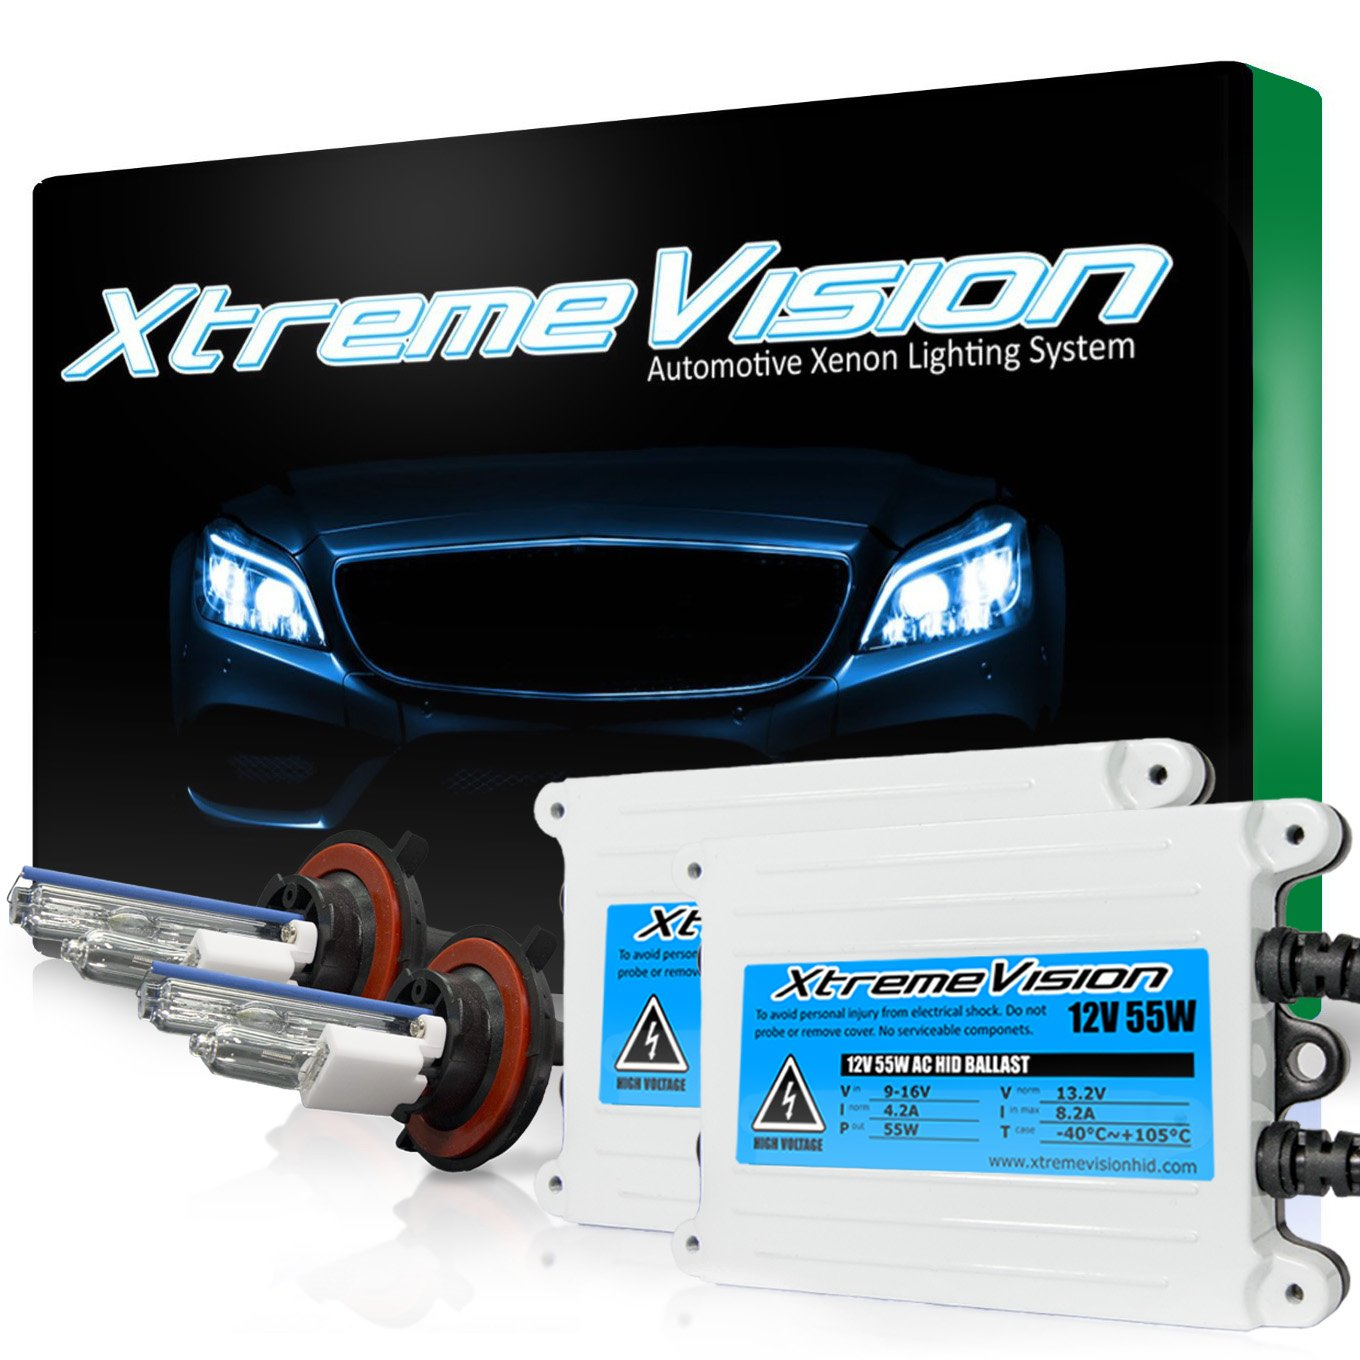 XtremeVision 55W AC Xenon HID Lights with Premium Slim AC Ballast - H13 / 9008 30000K - 30K Deep Blue - 2 Year Warranty